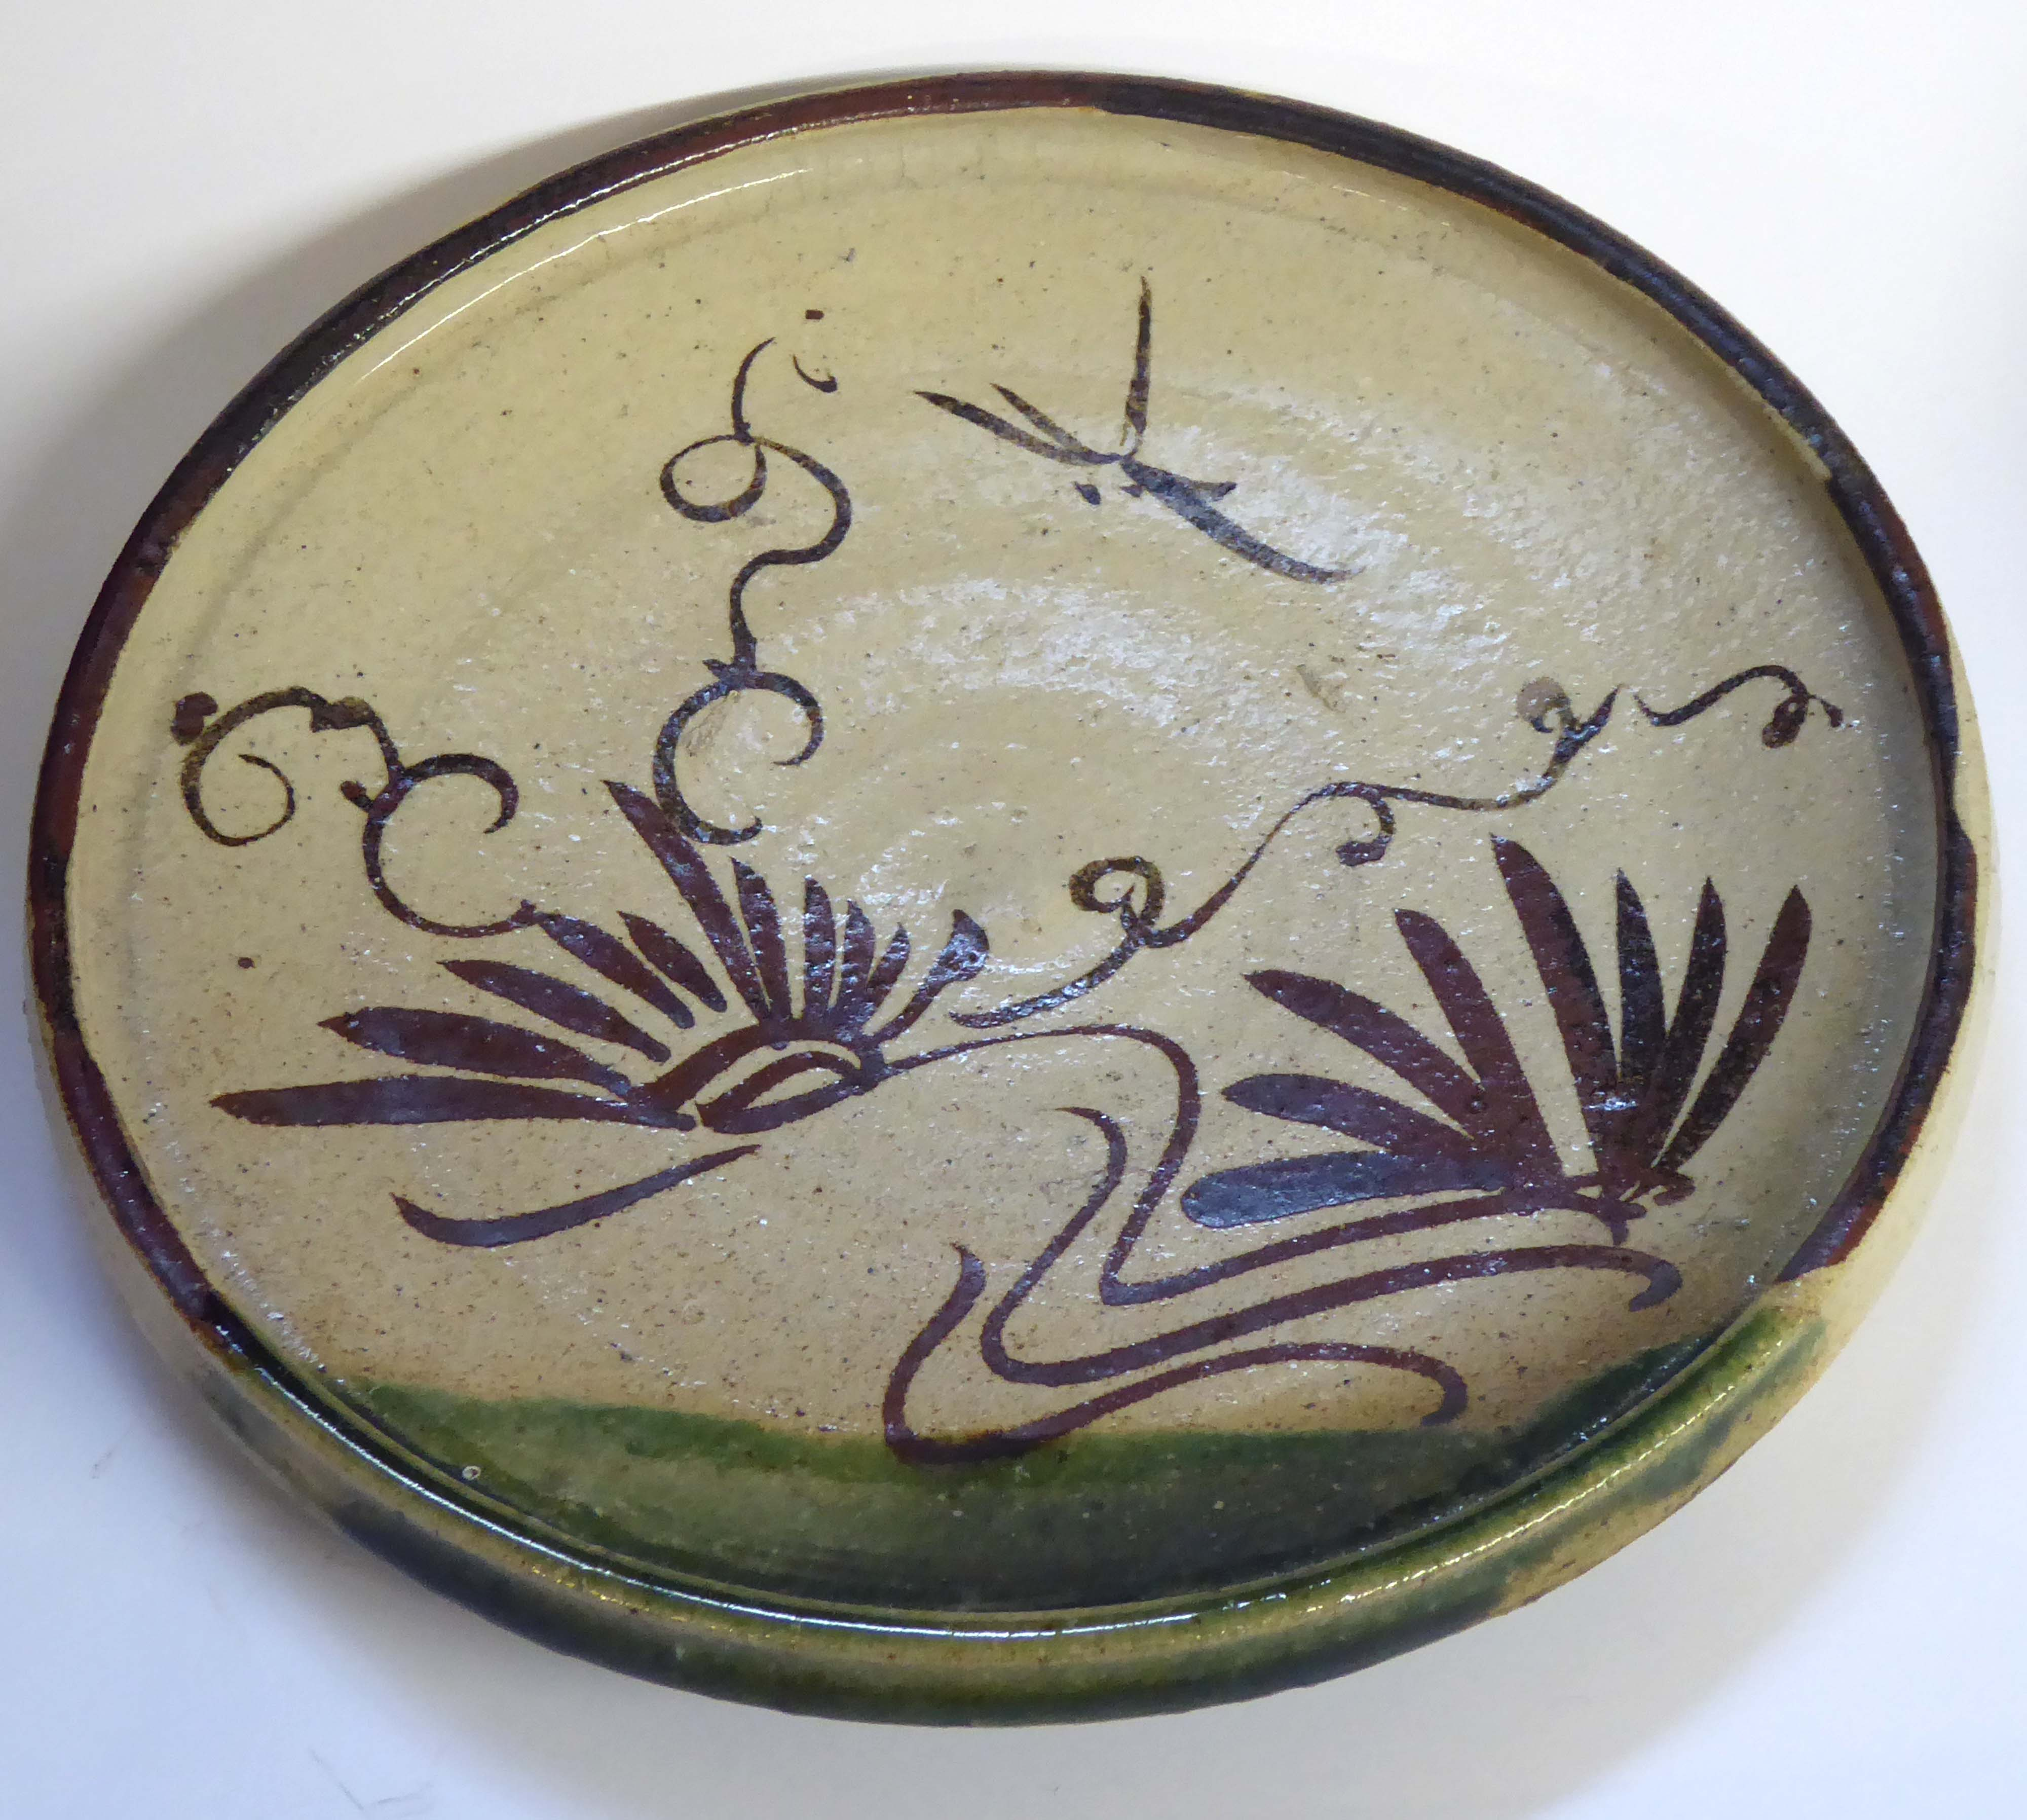 Lot 166 - A JAPANESE ORIBE POTTERY PLATE Having a shallow rim and hand painted decoration Approx 22cm